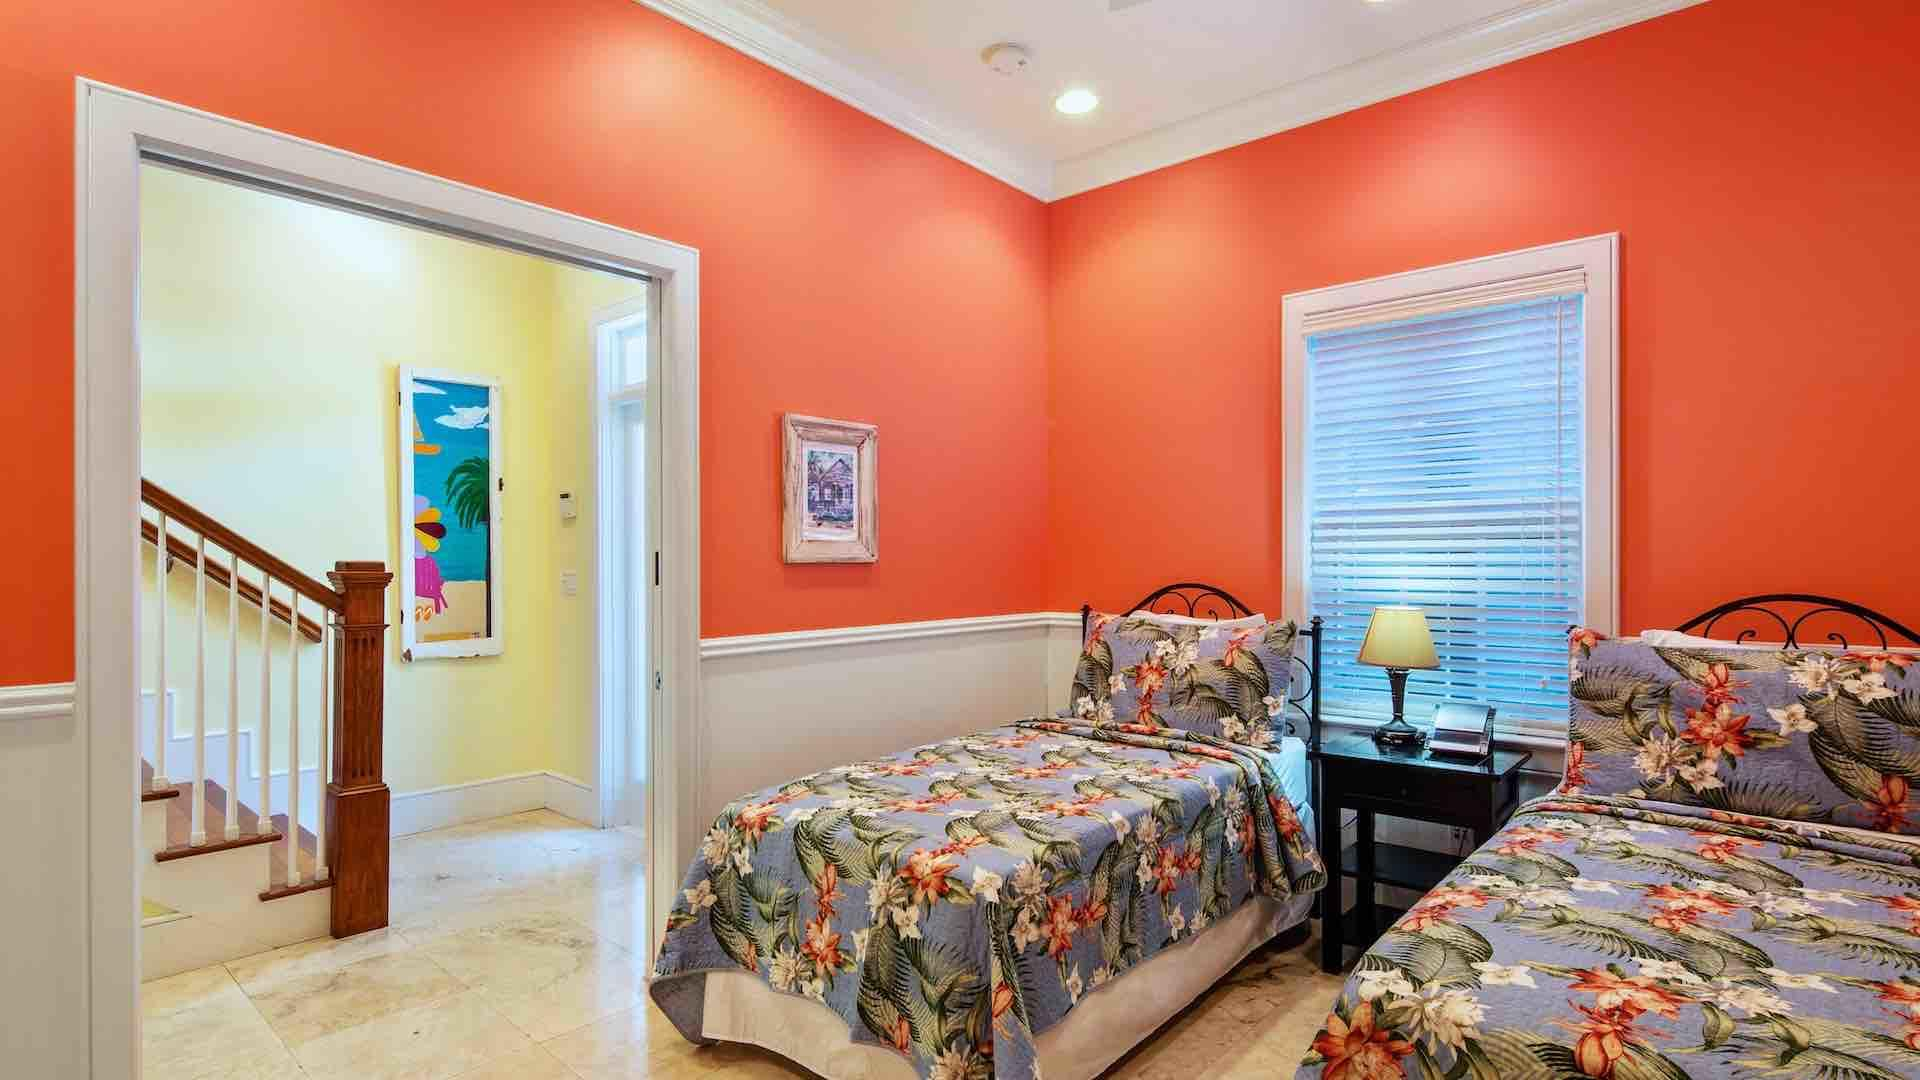 The first bedroom has two twin beds that can convert to a King bed upon request...